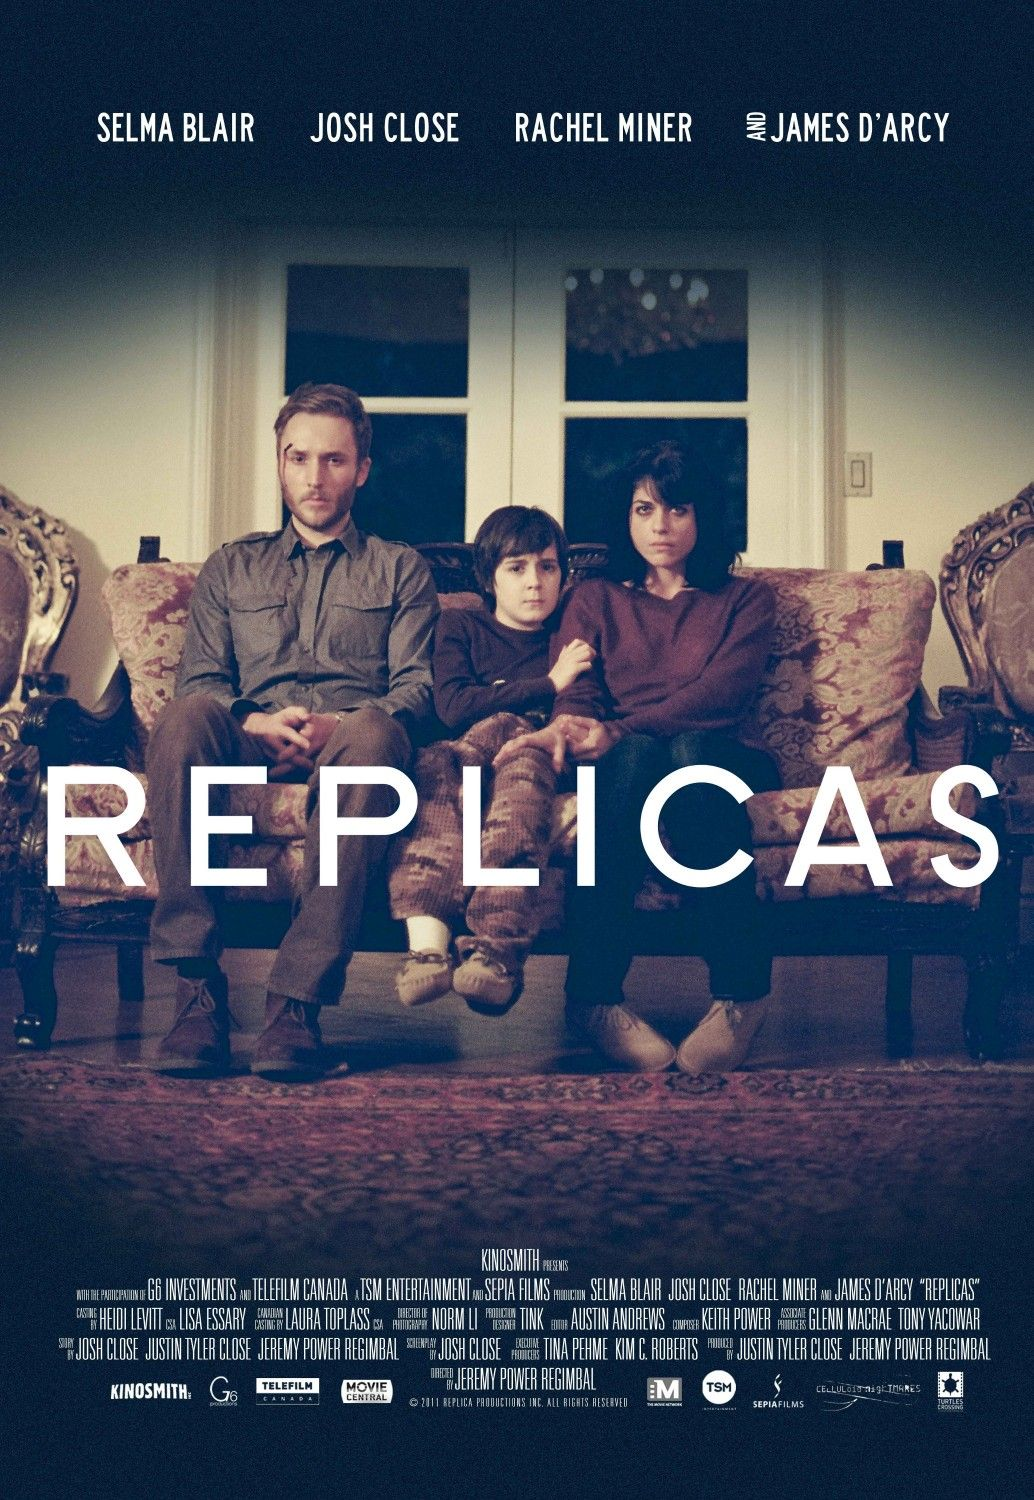 123movies Hd Watch Replicas Online Full For Free Movie Str Free Movies Online Full Movies Online Free Streaming Movies Free